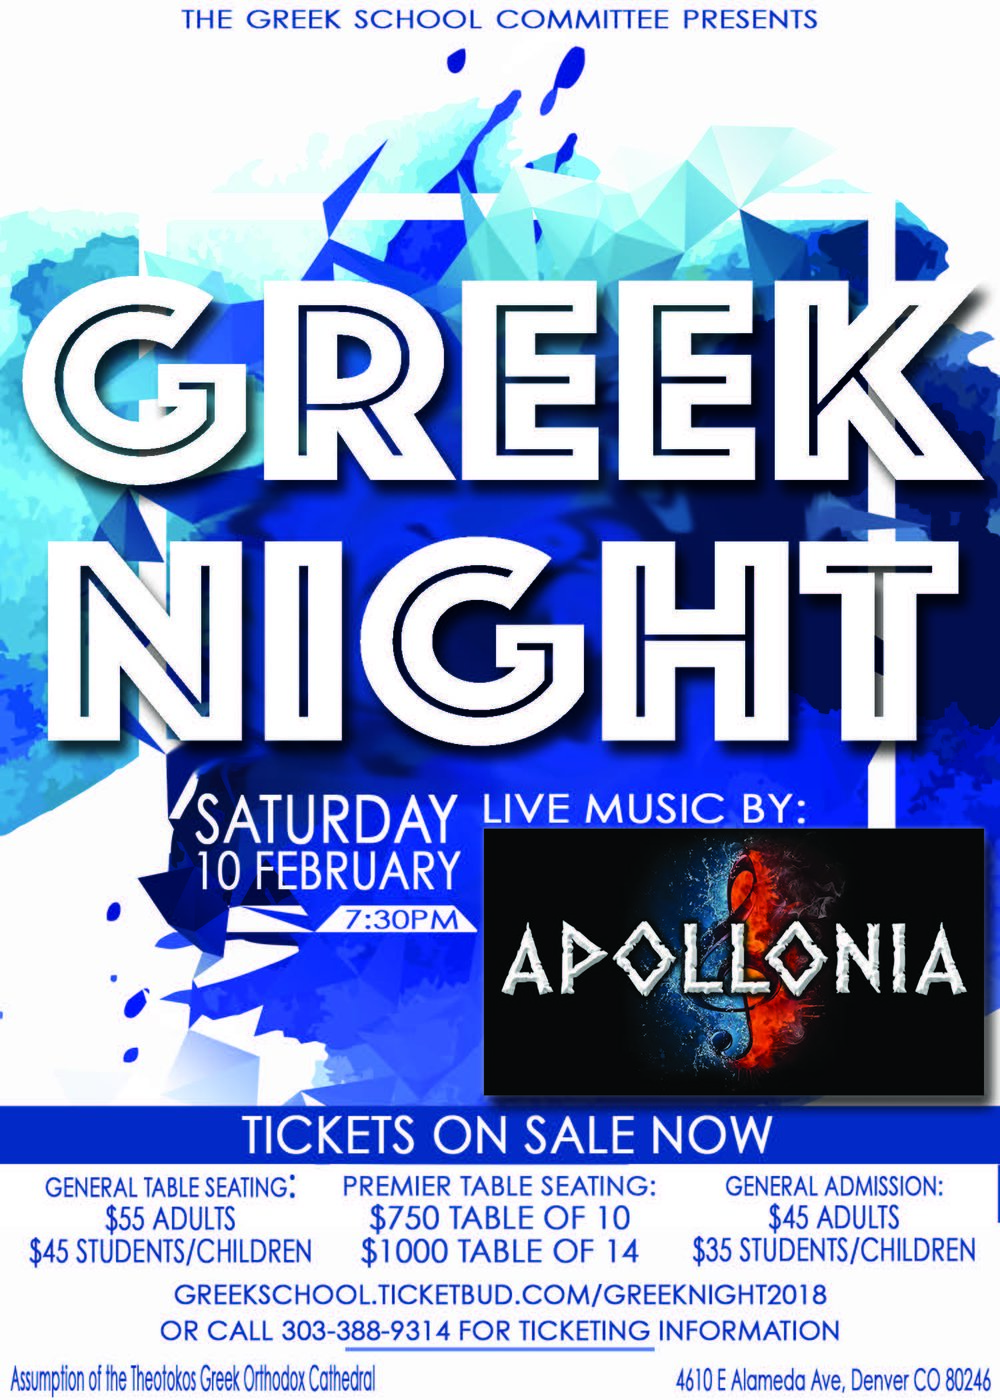 DenGreek Night Apollonia No stamp.jpg